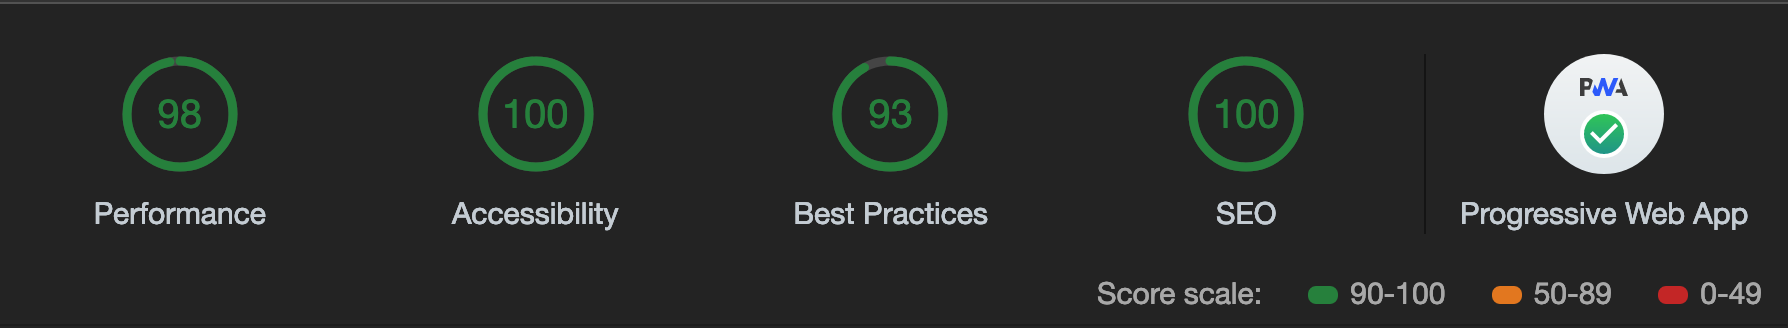 Lighthouse Scores: 98 (performance), 100 (accessibility), 93 (best practises), 100 (SEO), 12/12 (PWA)